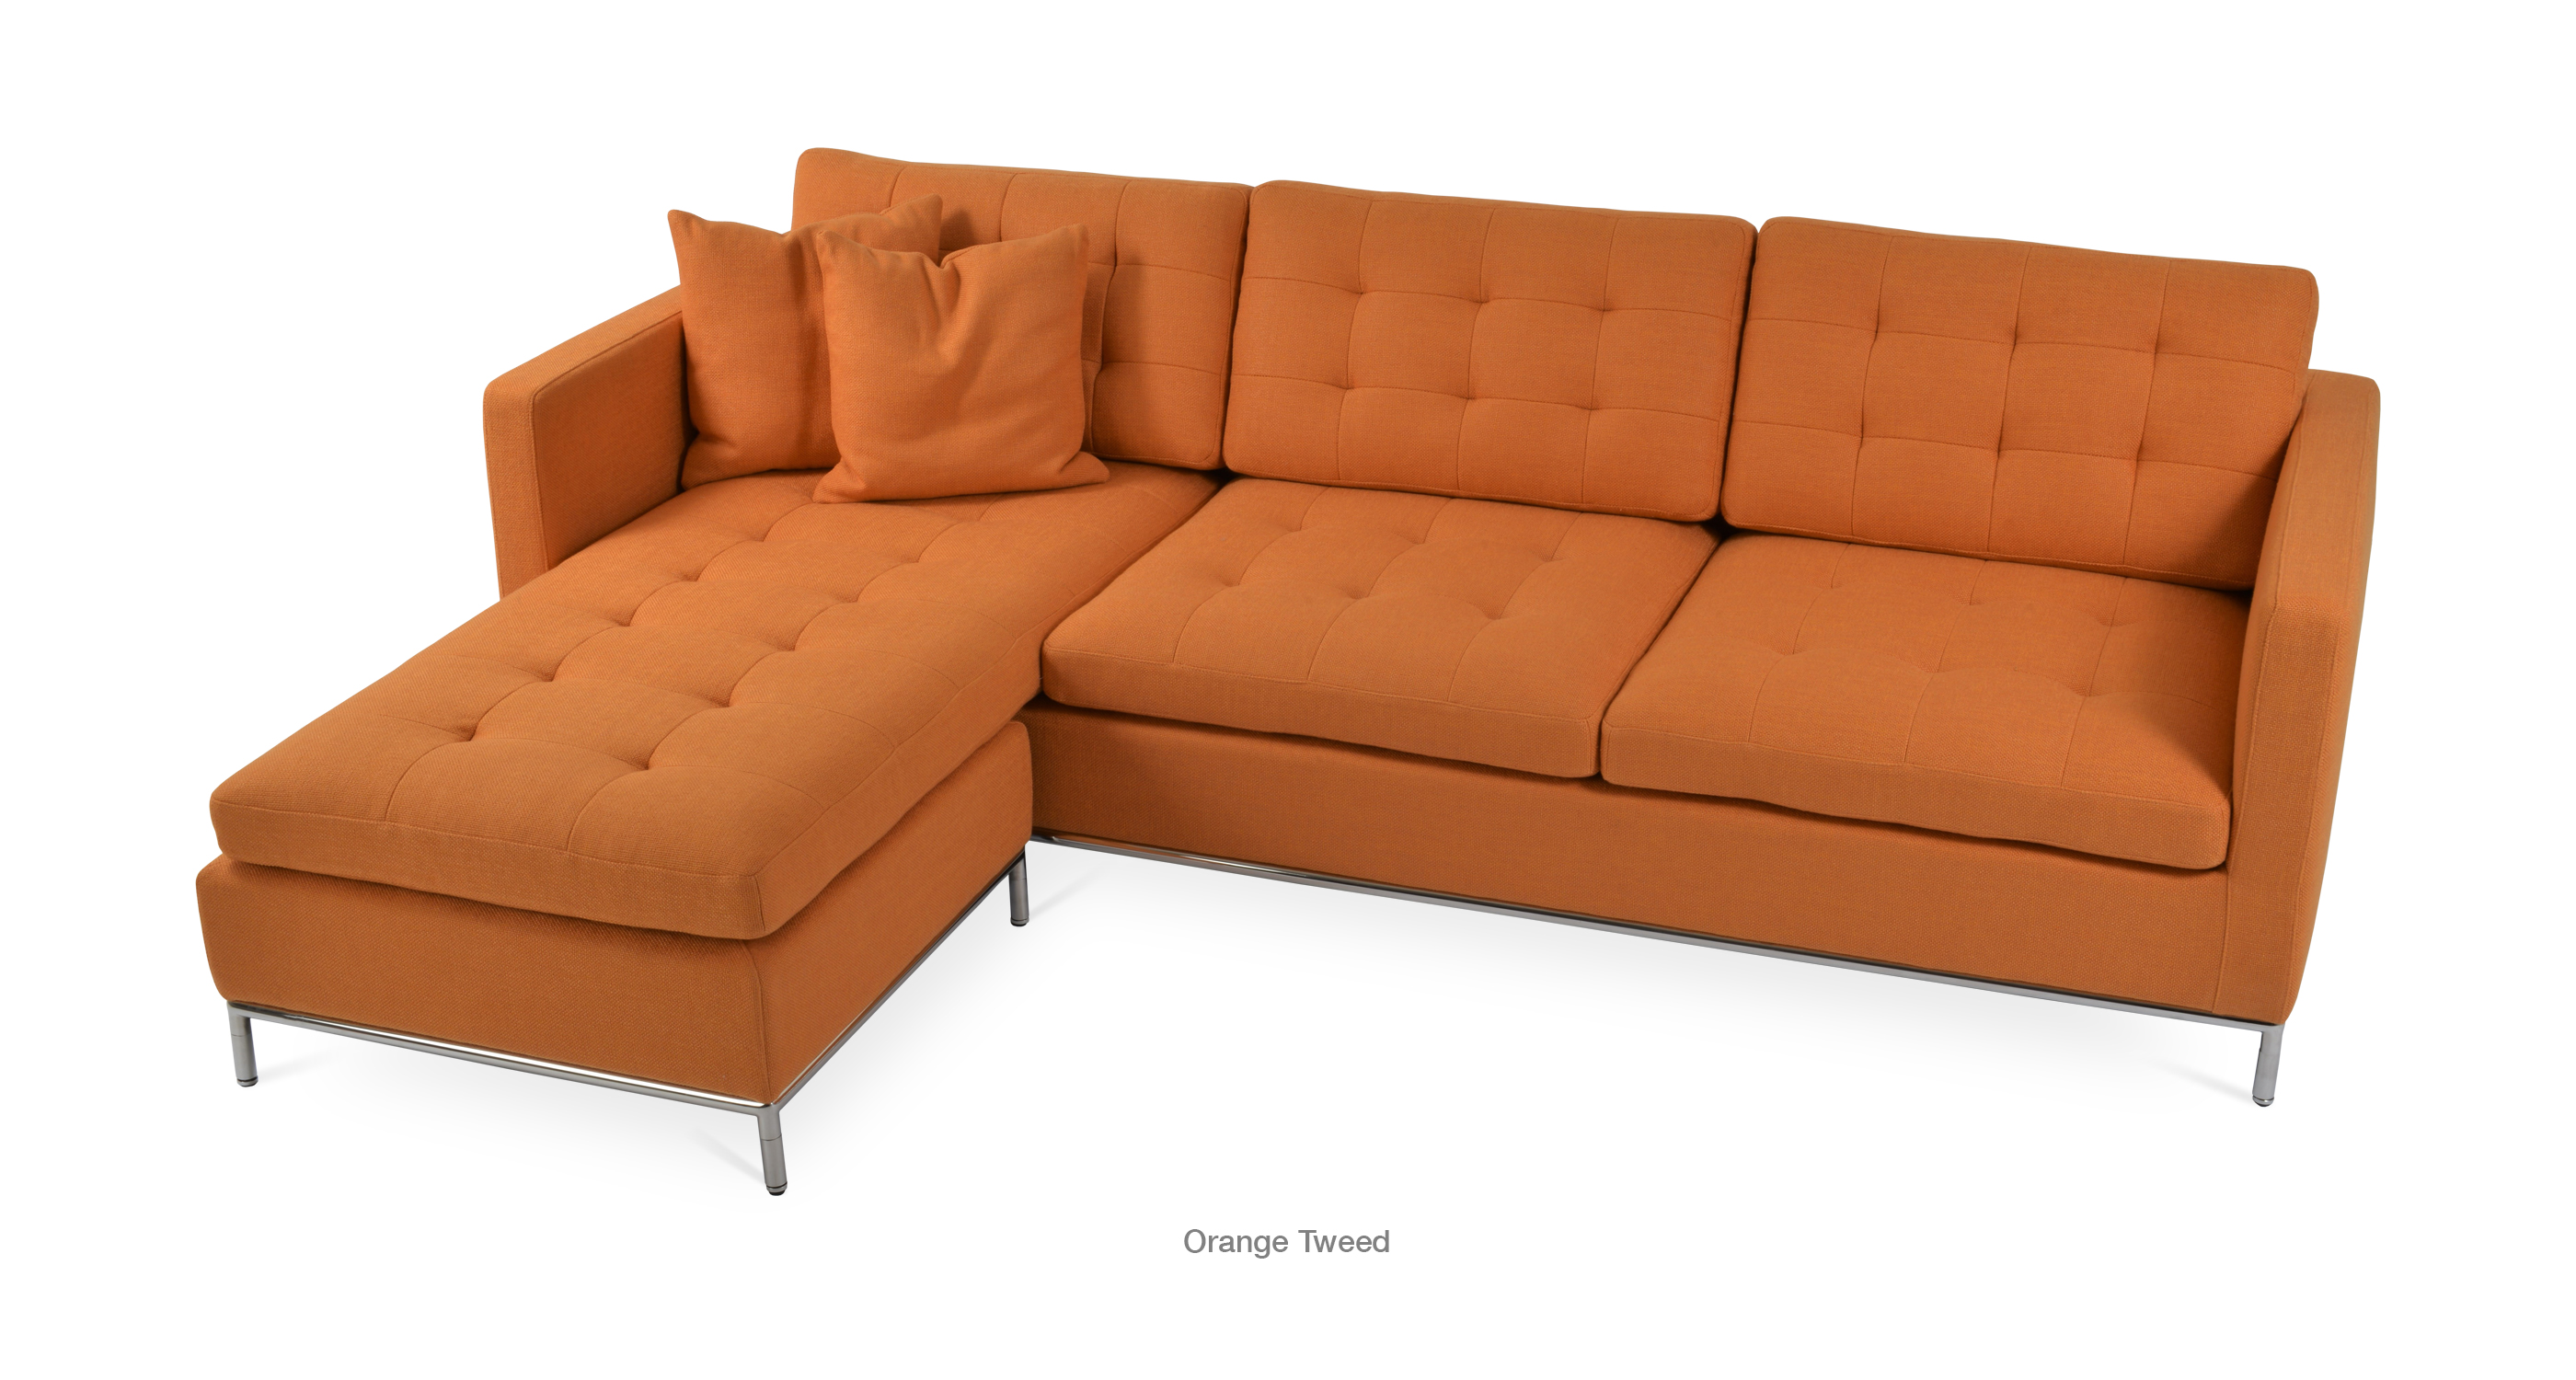 dark sectional lm with ottoman ottomanv collection orange brown county walden kmx